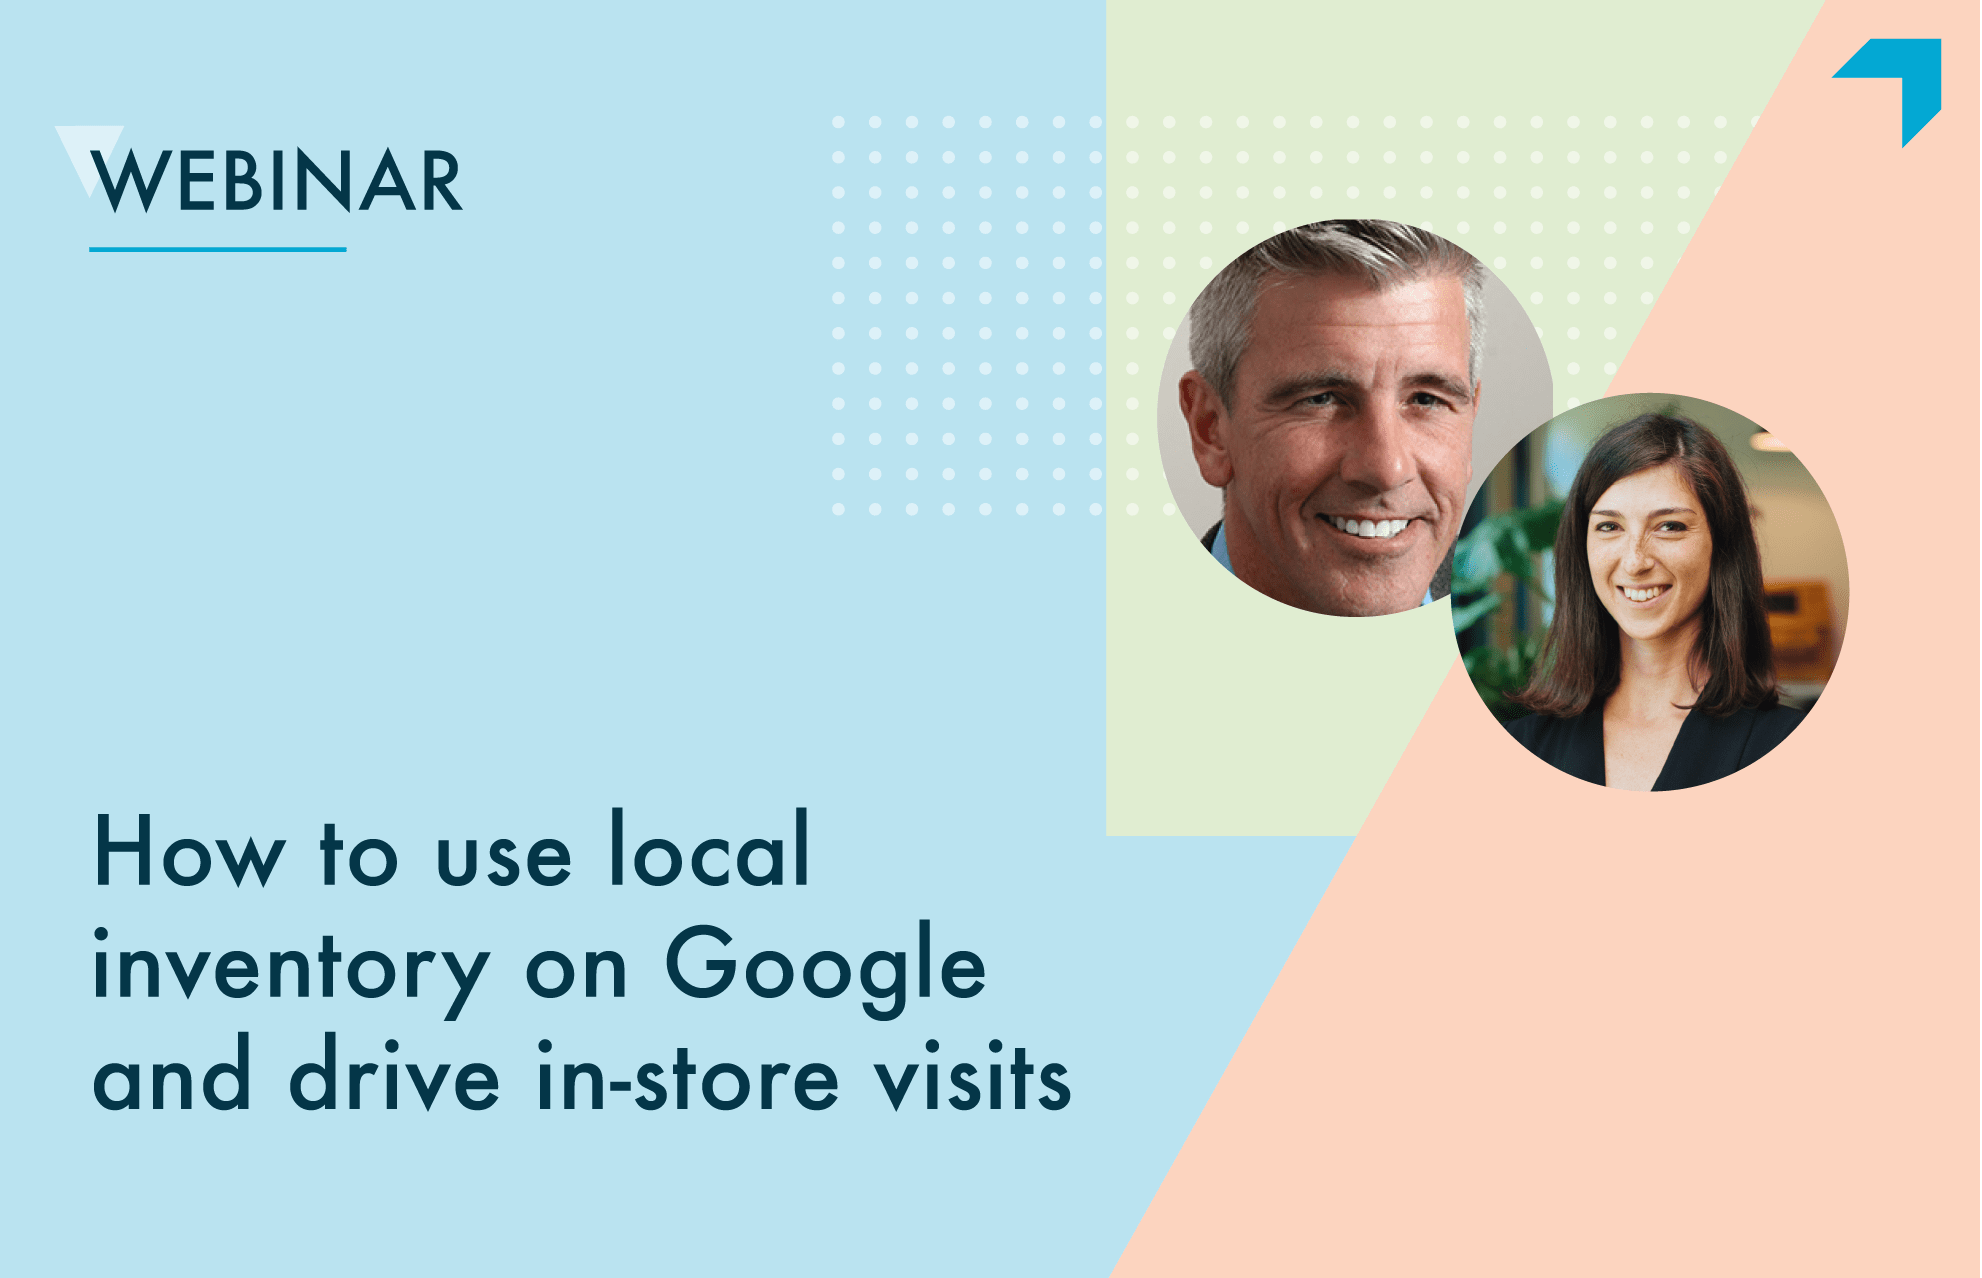 How to use local inventory on Google and drive in-store visits